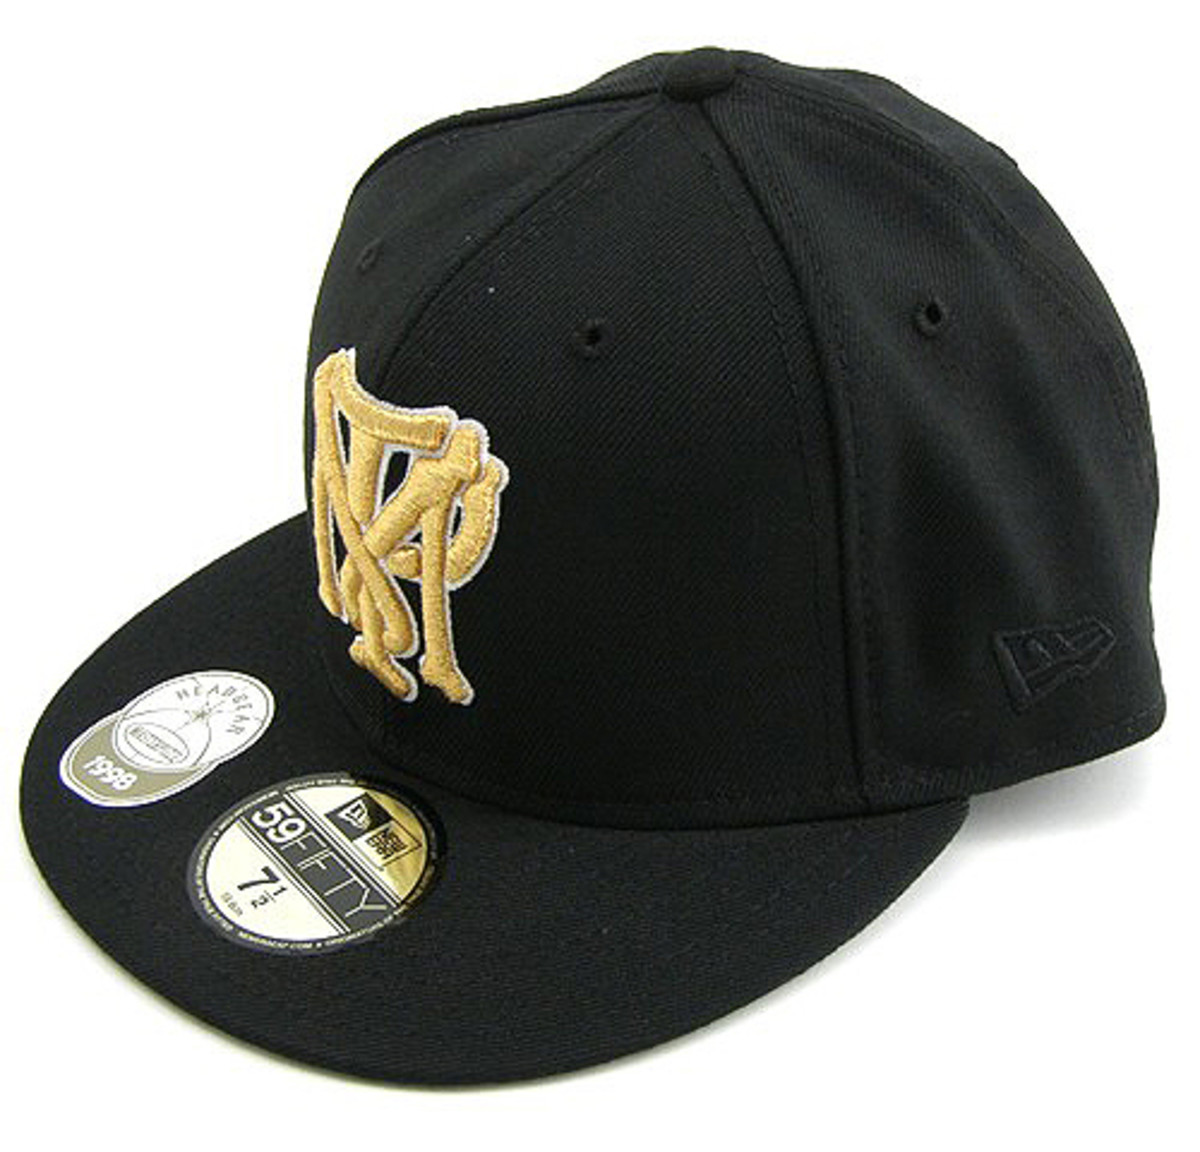 MASTERPIECE x New Era - MTB Bone Initals 59FIFTY Fitted Cap